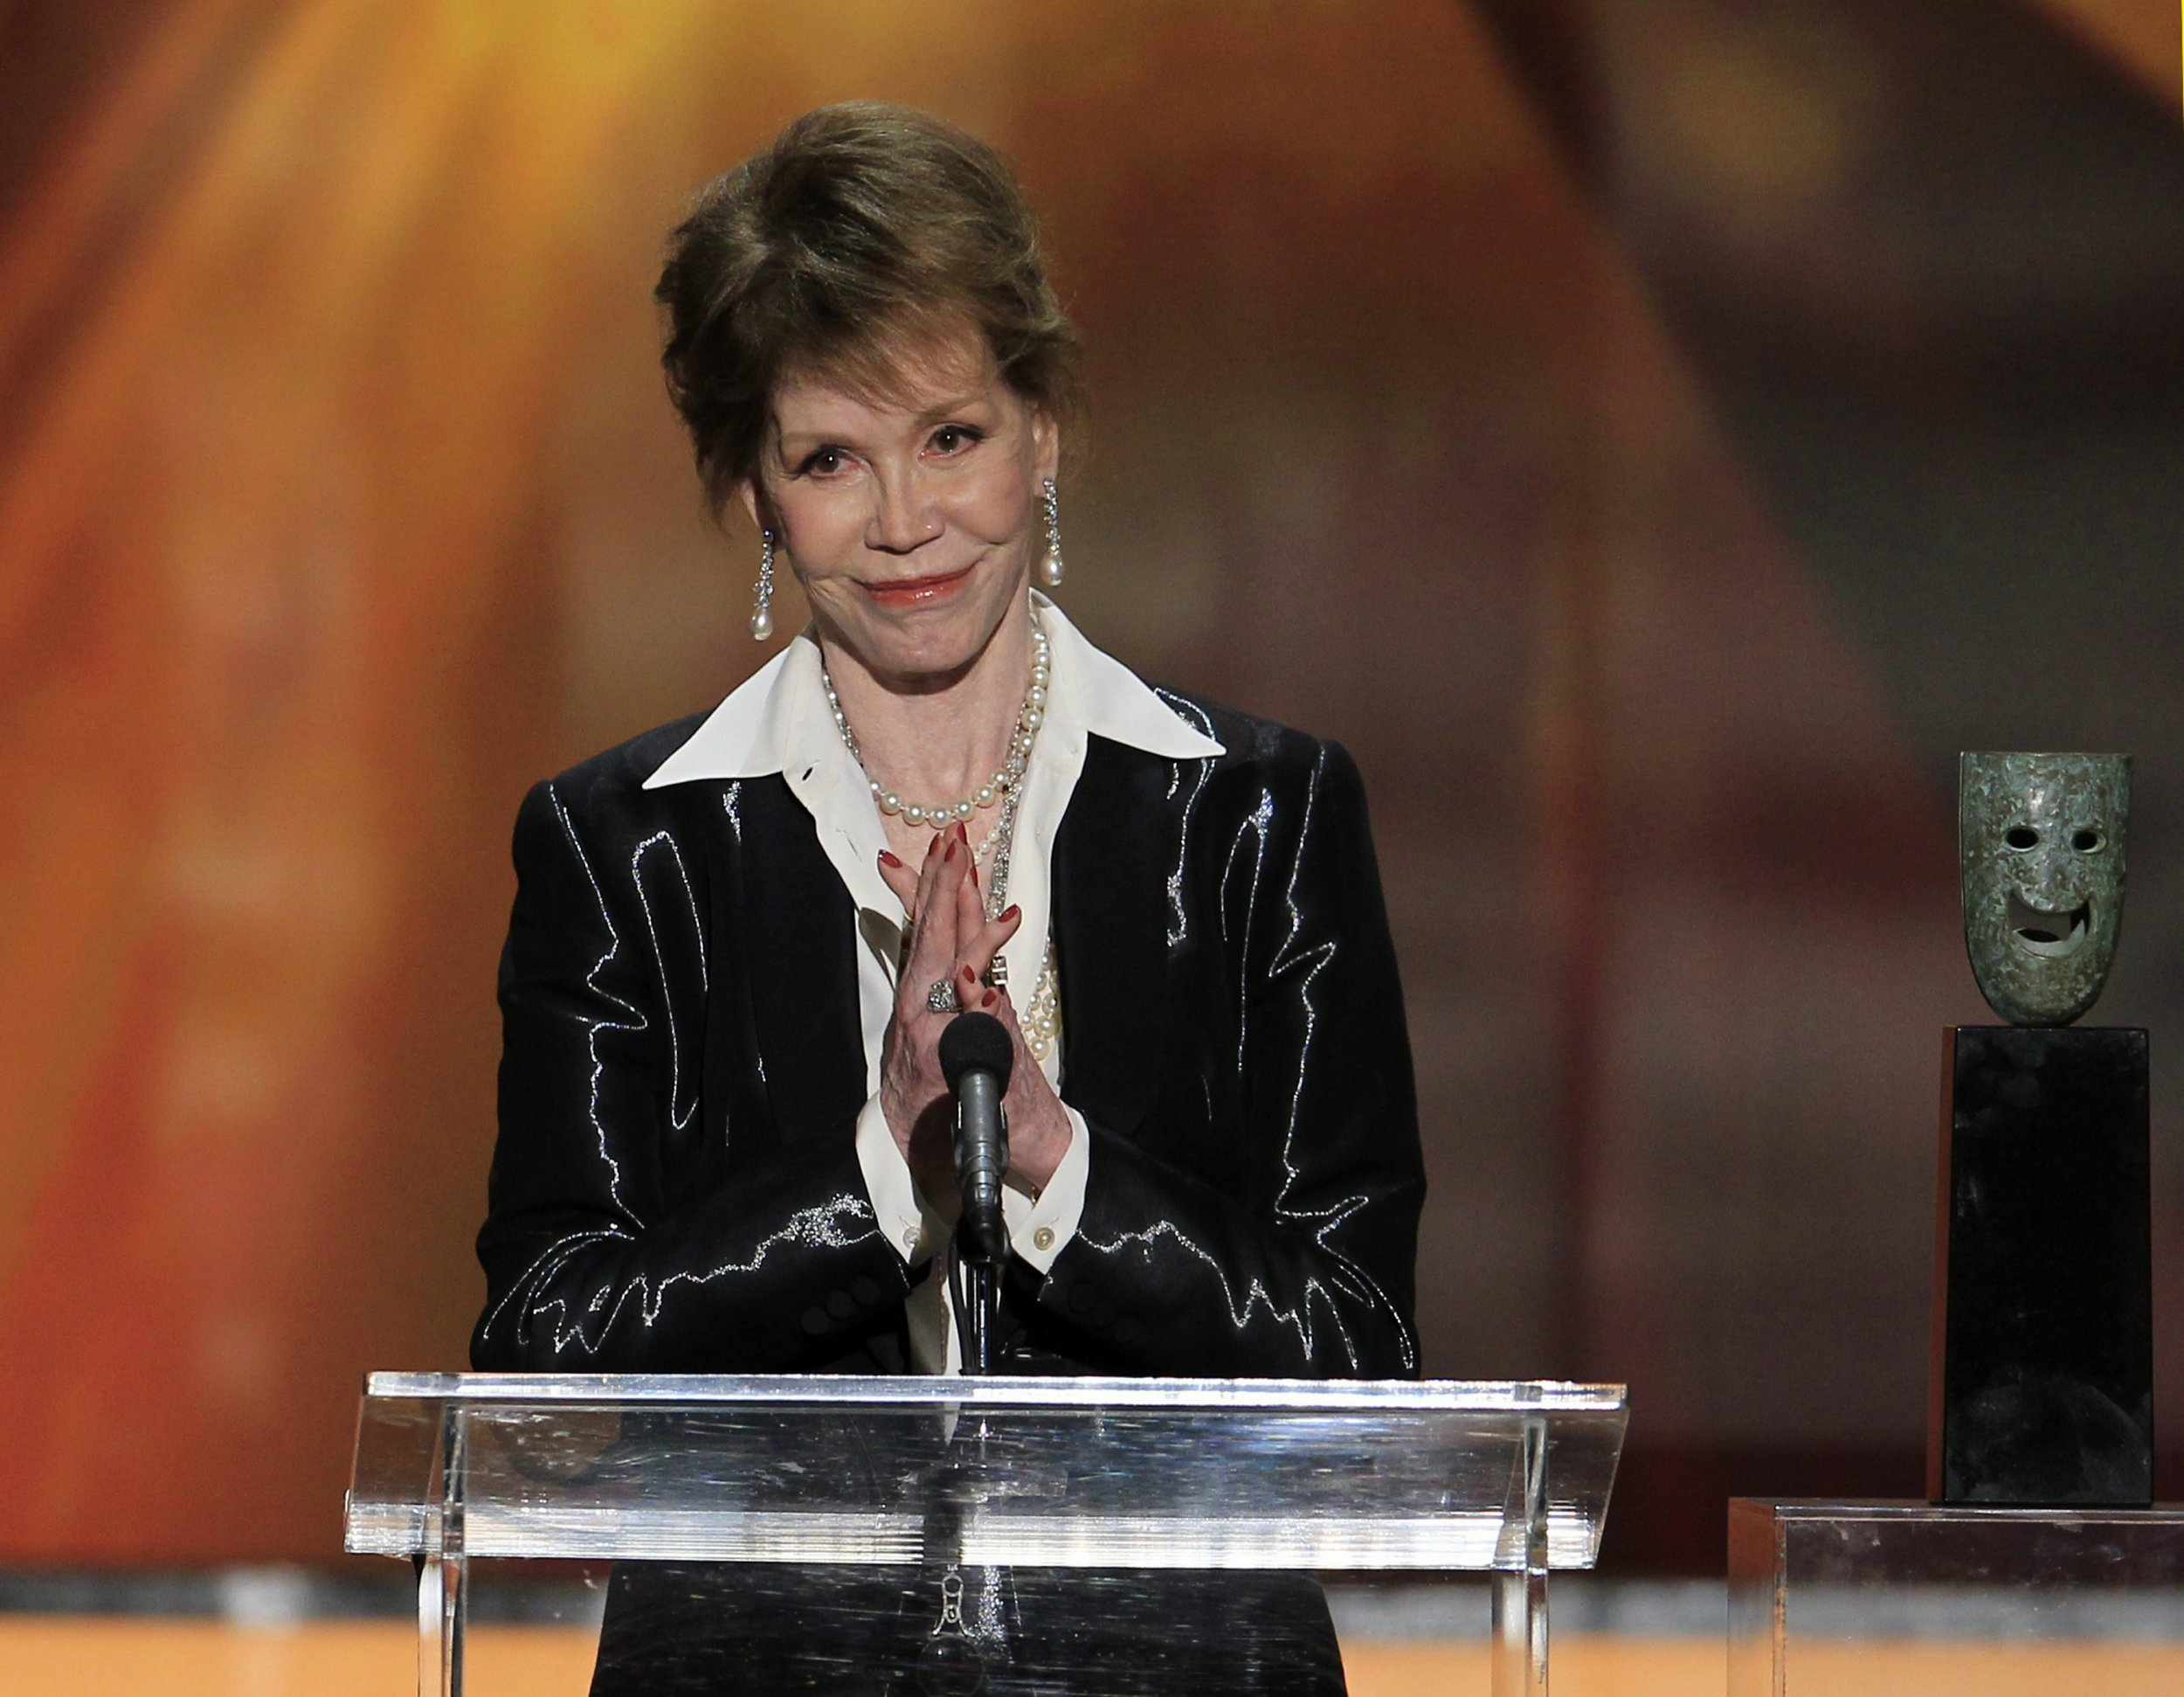 Actress Mary Tyler Moore accepts the Lifetime Achievement Award at the 18th annual Screen Actors Guild Awards in Los Angeles, California January 29, 2012. REUTERS/Lucy Nicholson (UNITED STATES - Tags: ENTERTAINMENT) (SAGAWARDS-SHOW) - RTR2X2EM